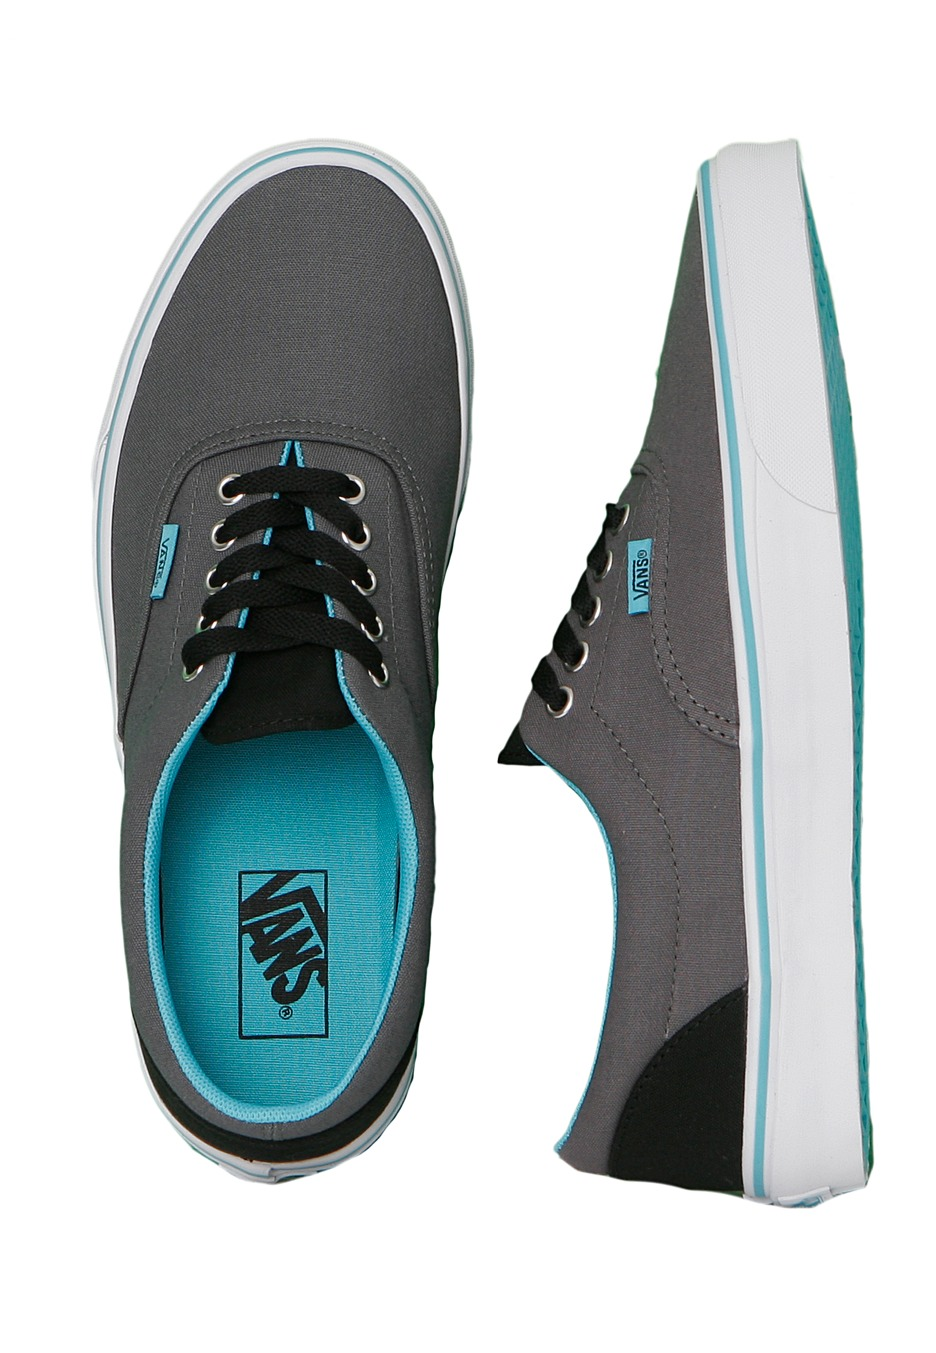 Vans - Era Castlerock Scuba - Shoes - Impericon.com Worldwide 2834962575